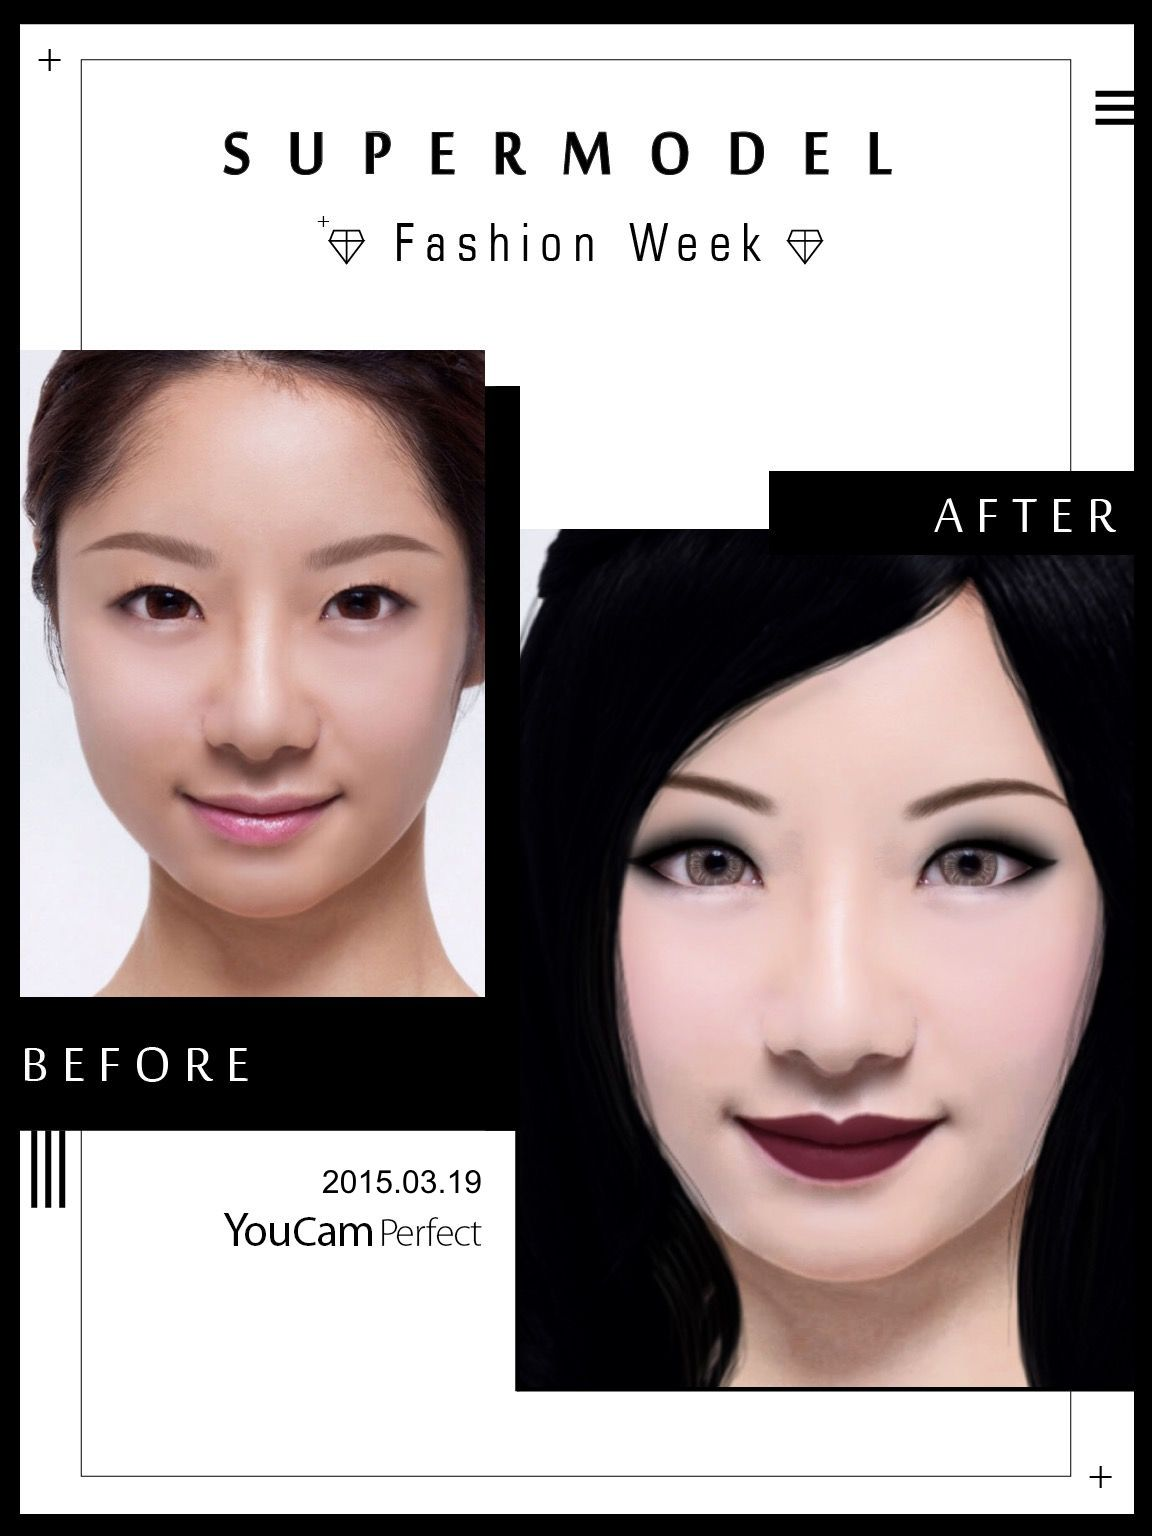 Pin by YouCam Apps on YouCam Perfect & YouCam Makeup